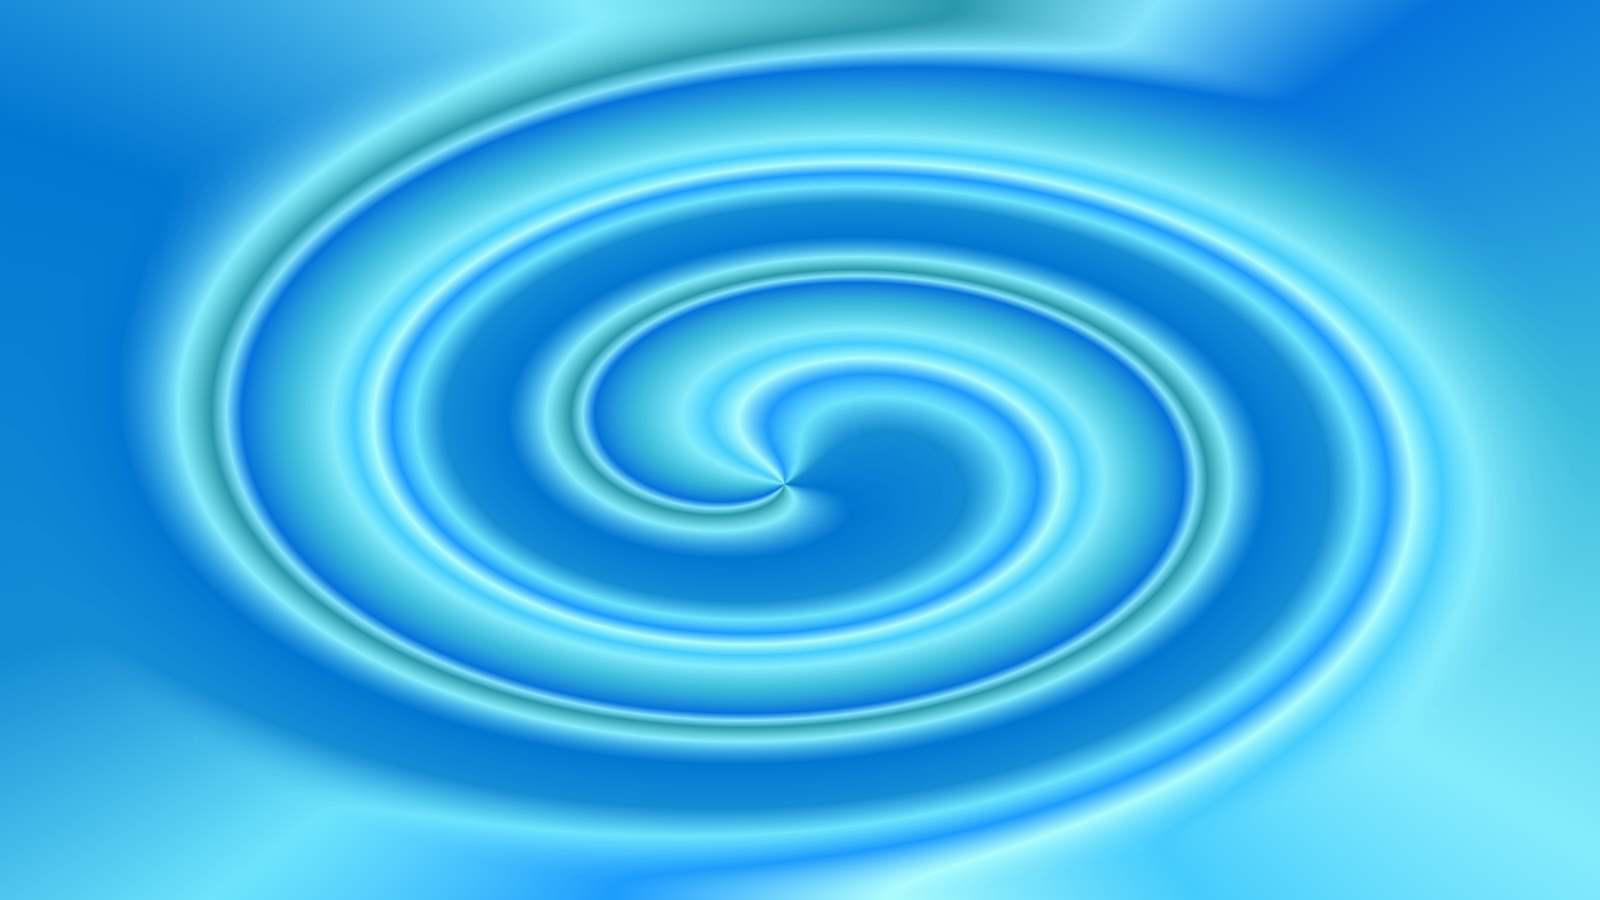 Blue Swirl Ipad Wallpaper Background And Theme